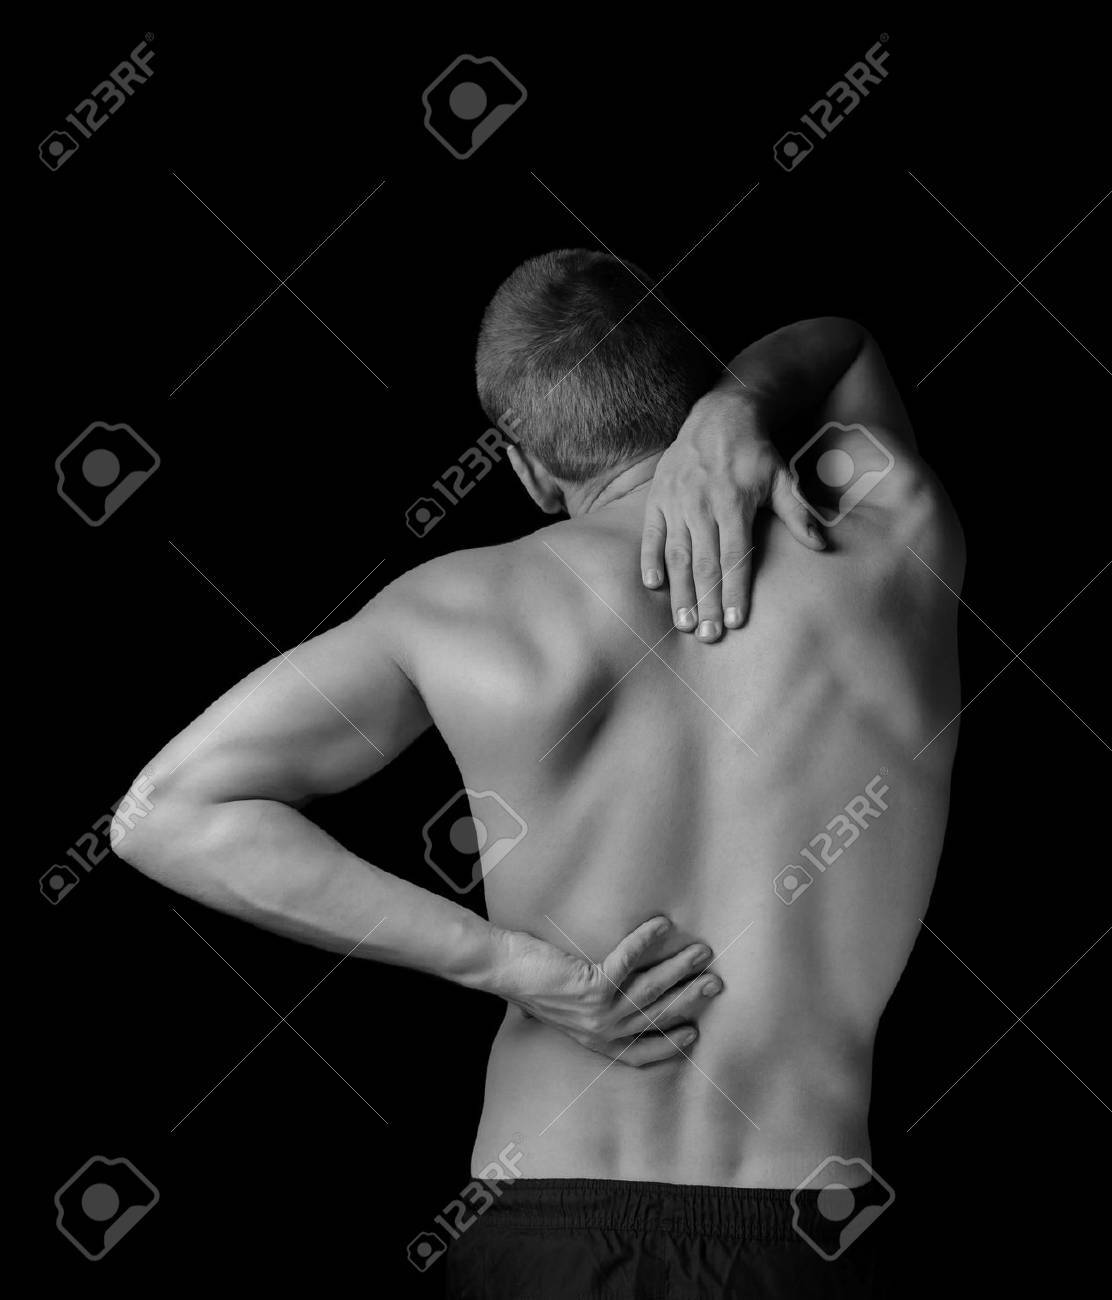 Man is touching the back, concept of pain in the spine, monochrome image - 37763058